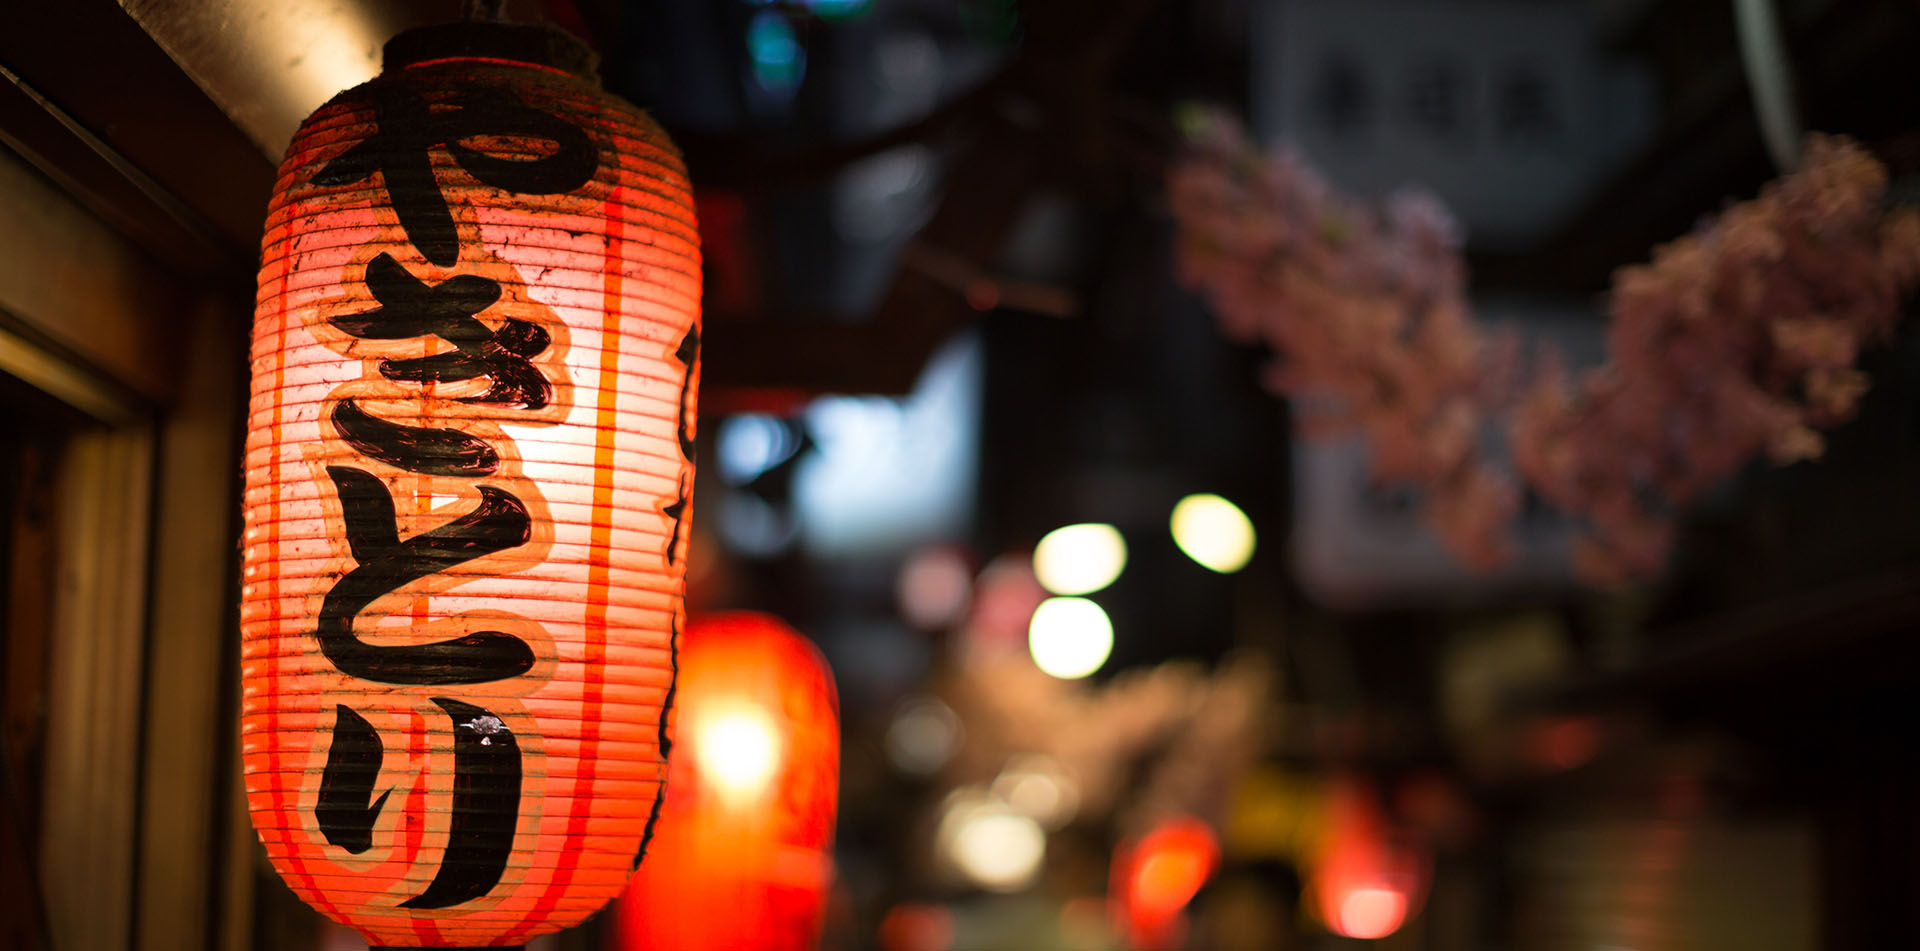 Asia Japan traditional red lantern with Japanese kanji and kana writing - luxury vacation destinations